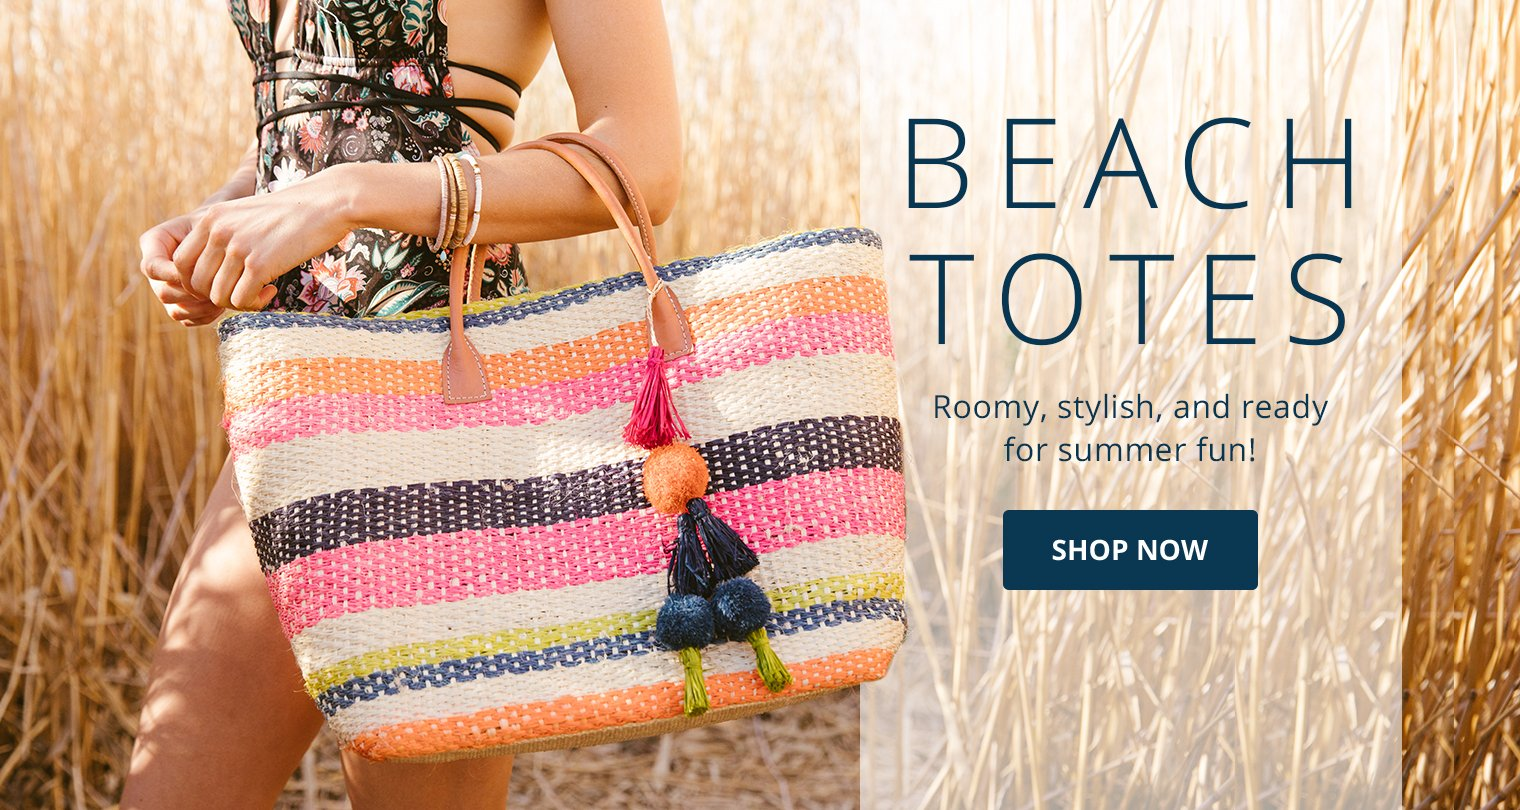 Beach Totes: Roomy, stylish, and ready for summer fun.